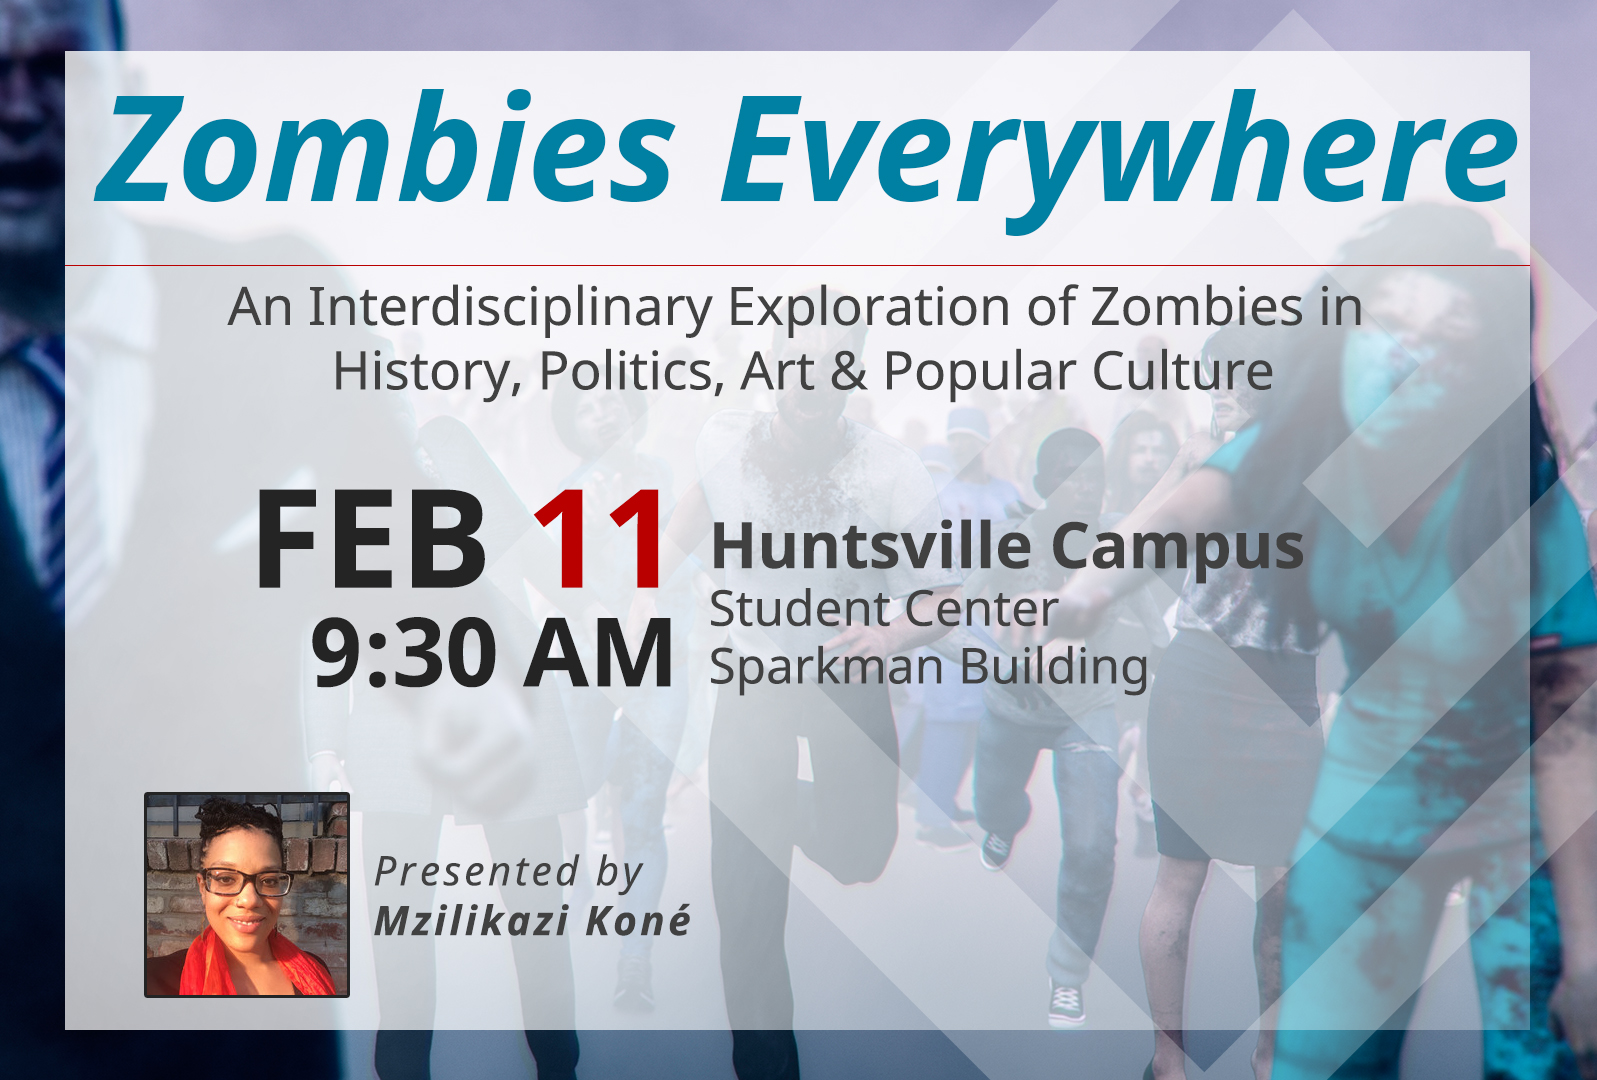 Zombies Everywhere - An Interdisciplinary Exploration of Zombies in History, Politics, Art & Popular Culture. Feb 11, 9:30 AM. huntsville Campus, Student Center, Sparkman Building. Presented by Mzilikazi Kone